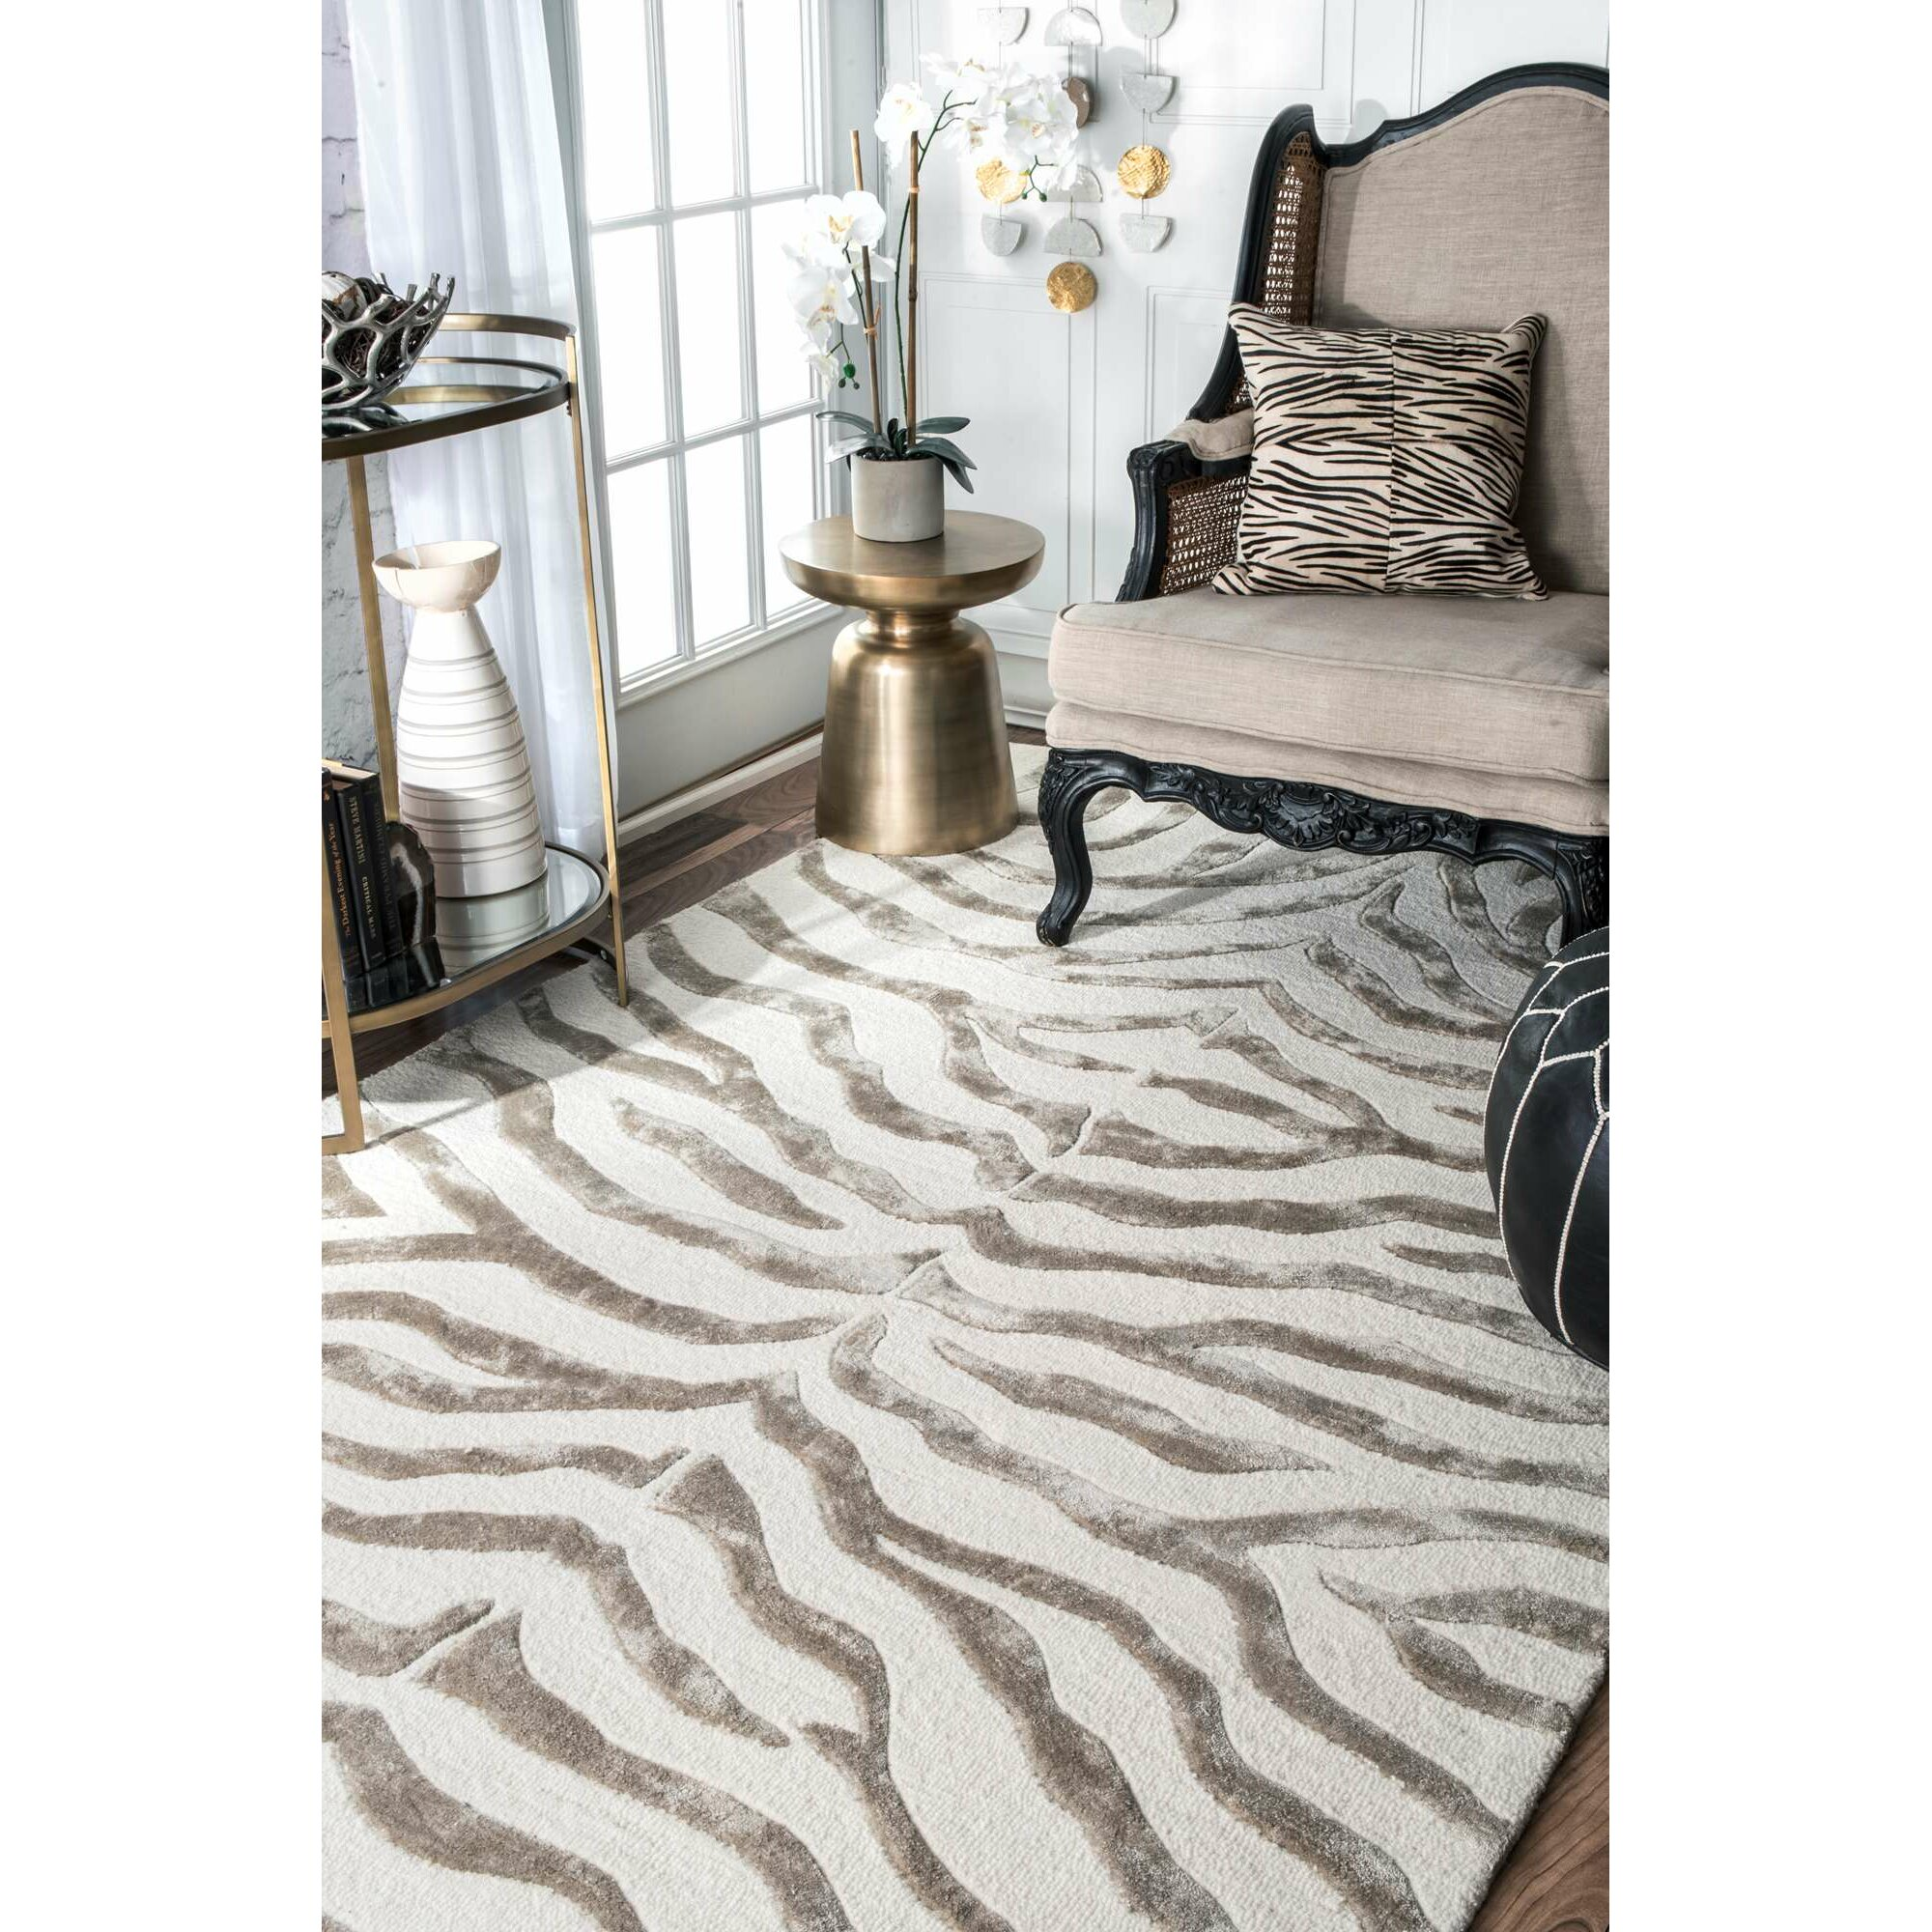 Mercer41 Dodgson Soft Zebra Technique Gray/Ivory Area Rug